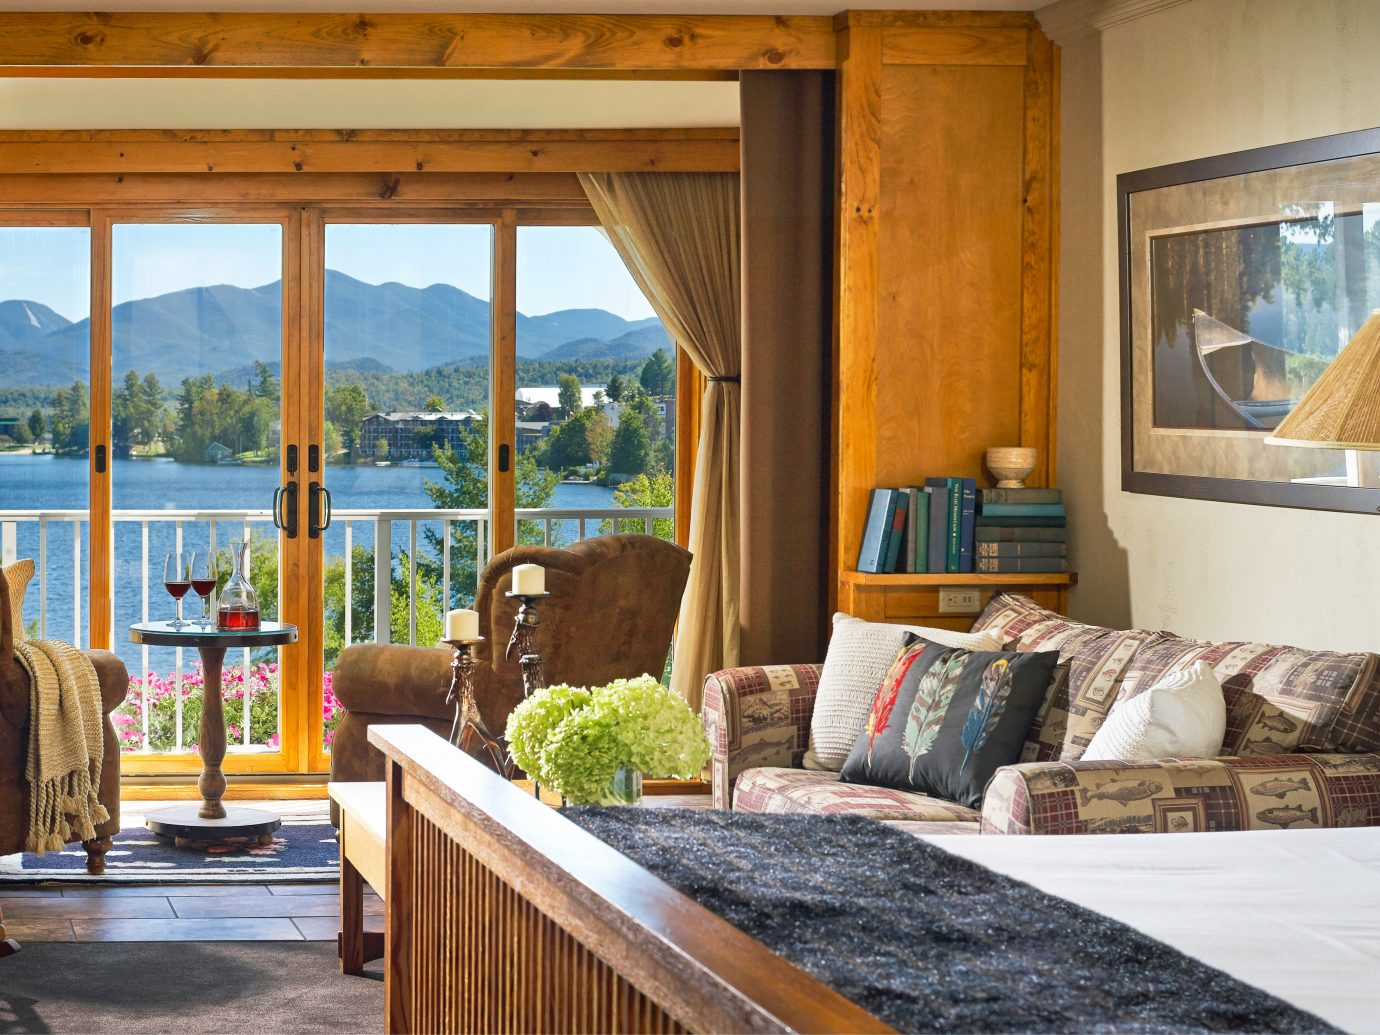 Bedroom Classic Country Inn Luxury Suite indoor room property window house bed home estate cottage living room real estate interior design farmhouse wood porch log cabin Villa furniture